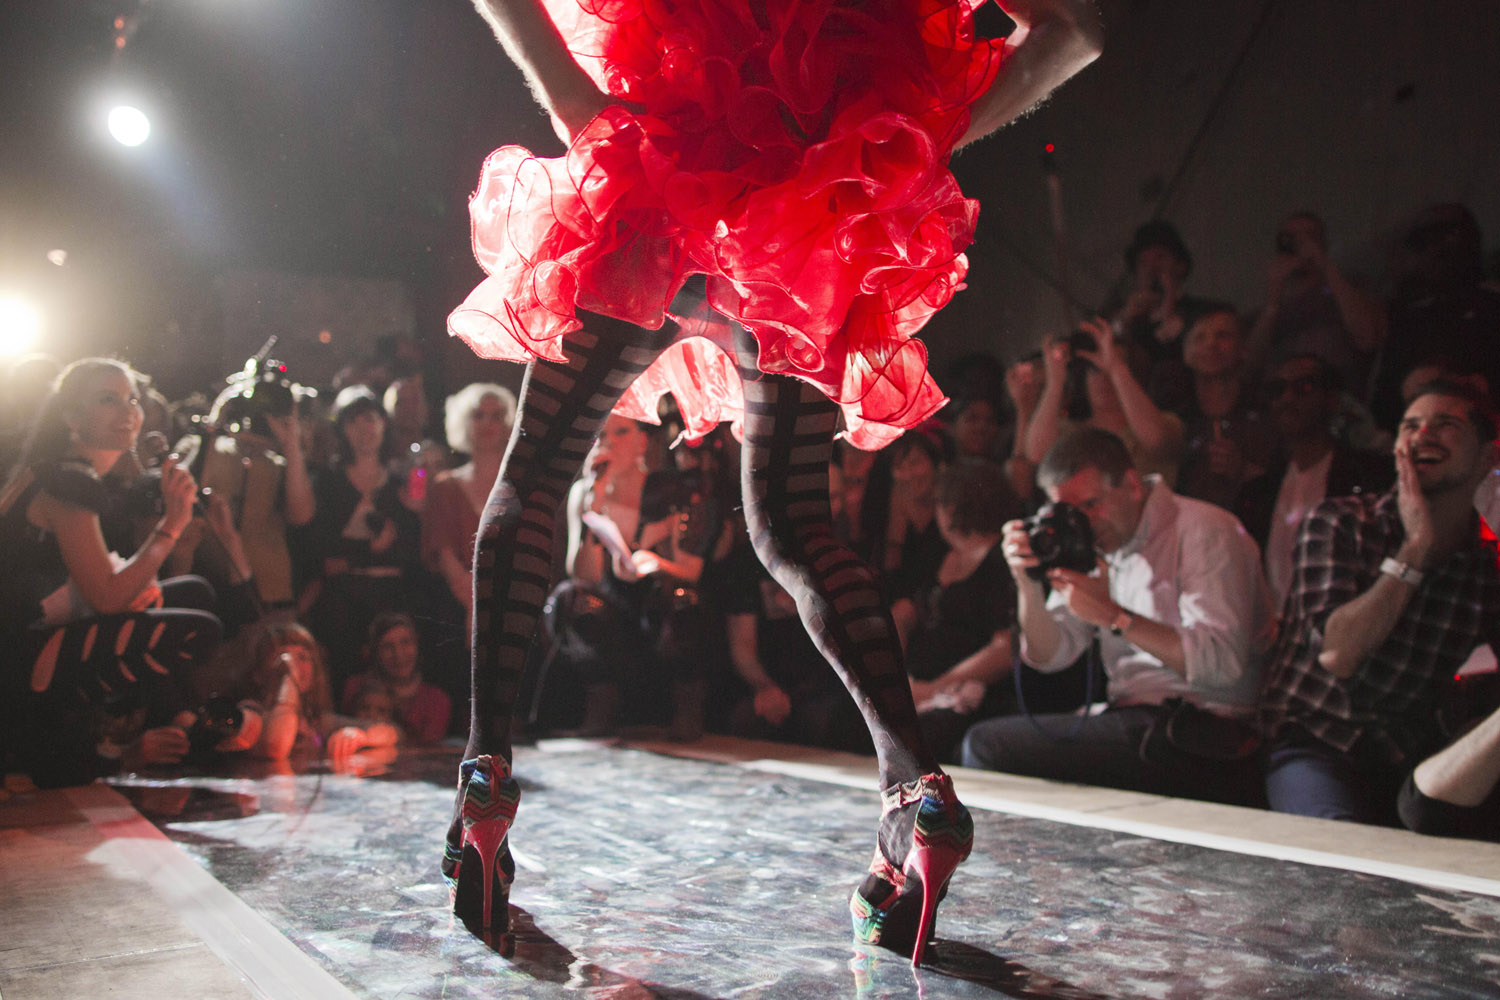 Aug. 11, 2012. A competitor performs on the catwalk at the first German Voguing Festival in Berlin.